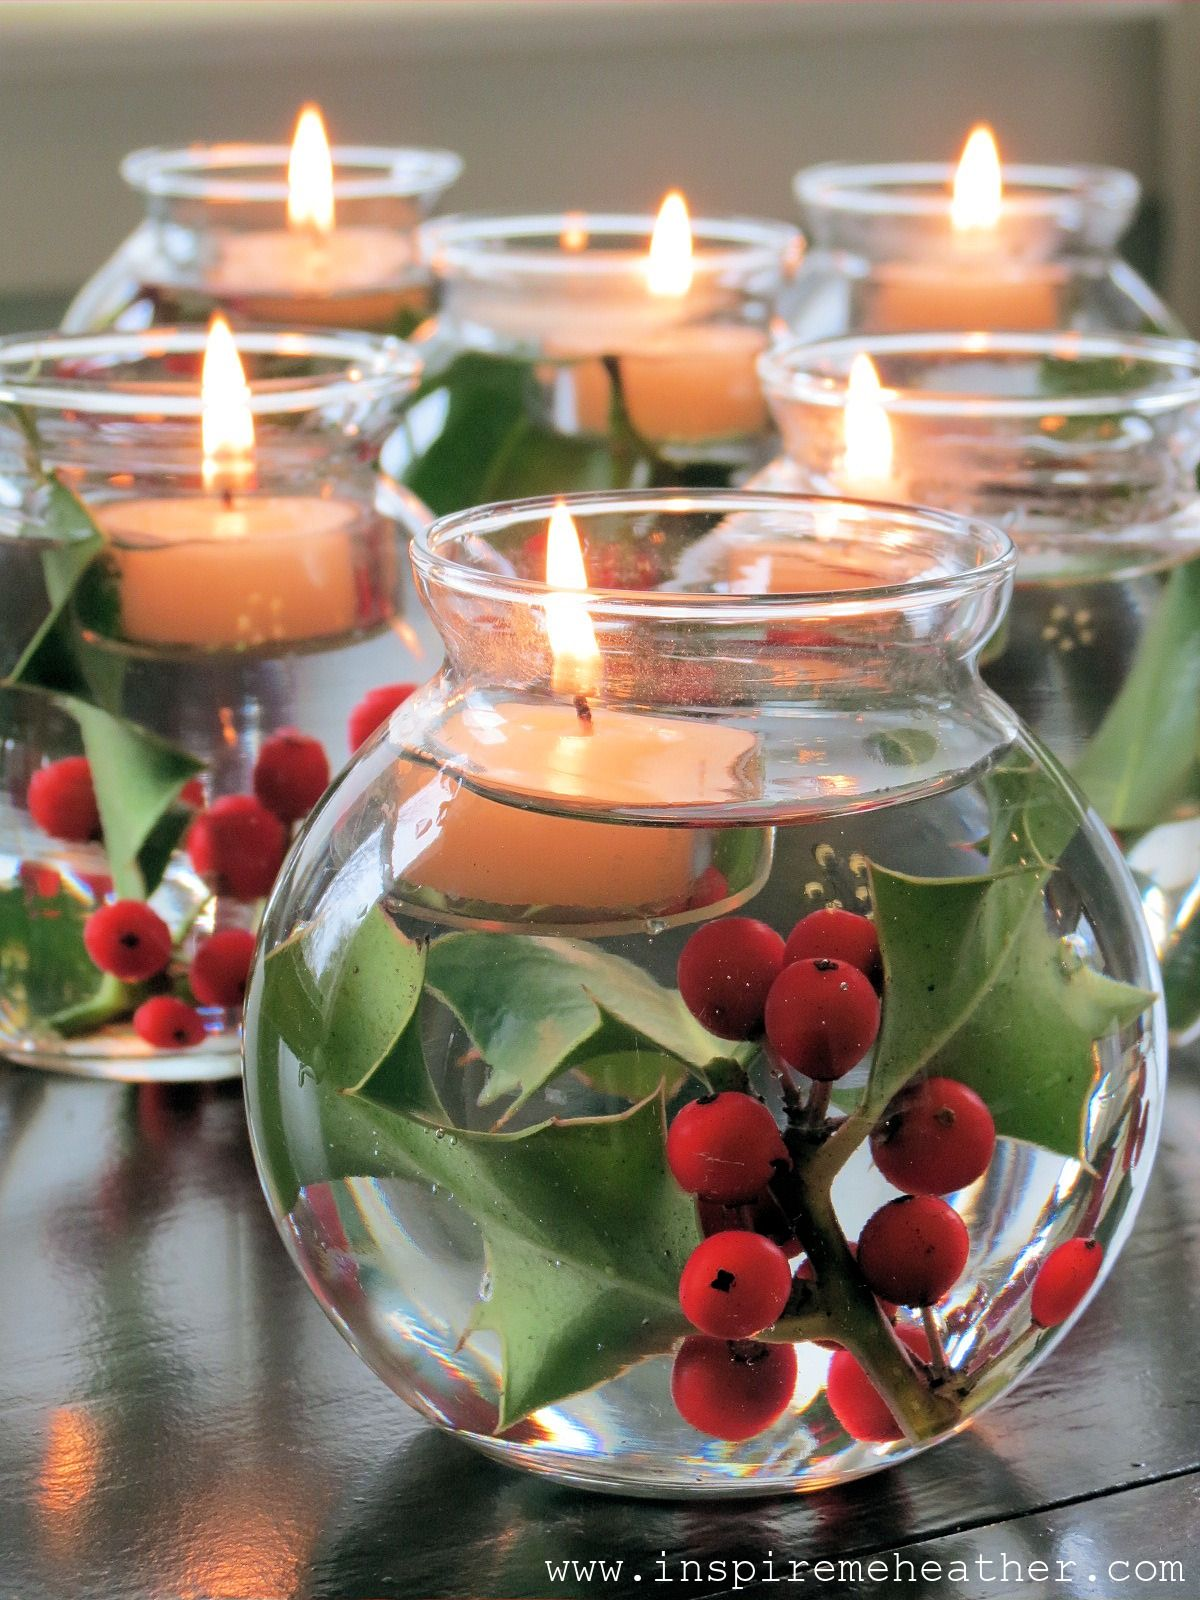 Candles berries and greenery floating in water Simple but lovely